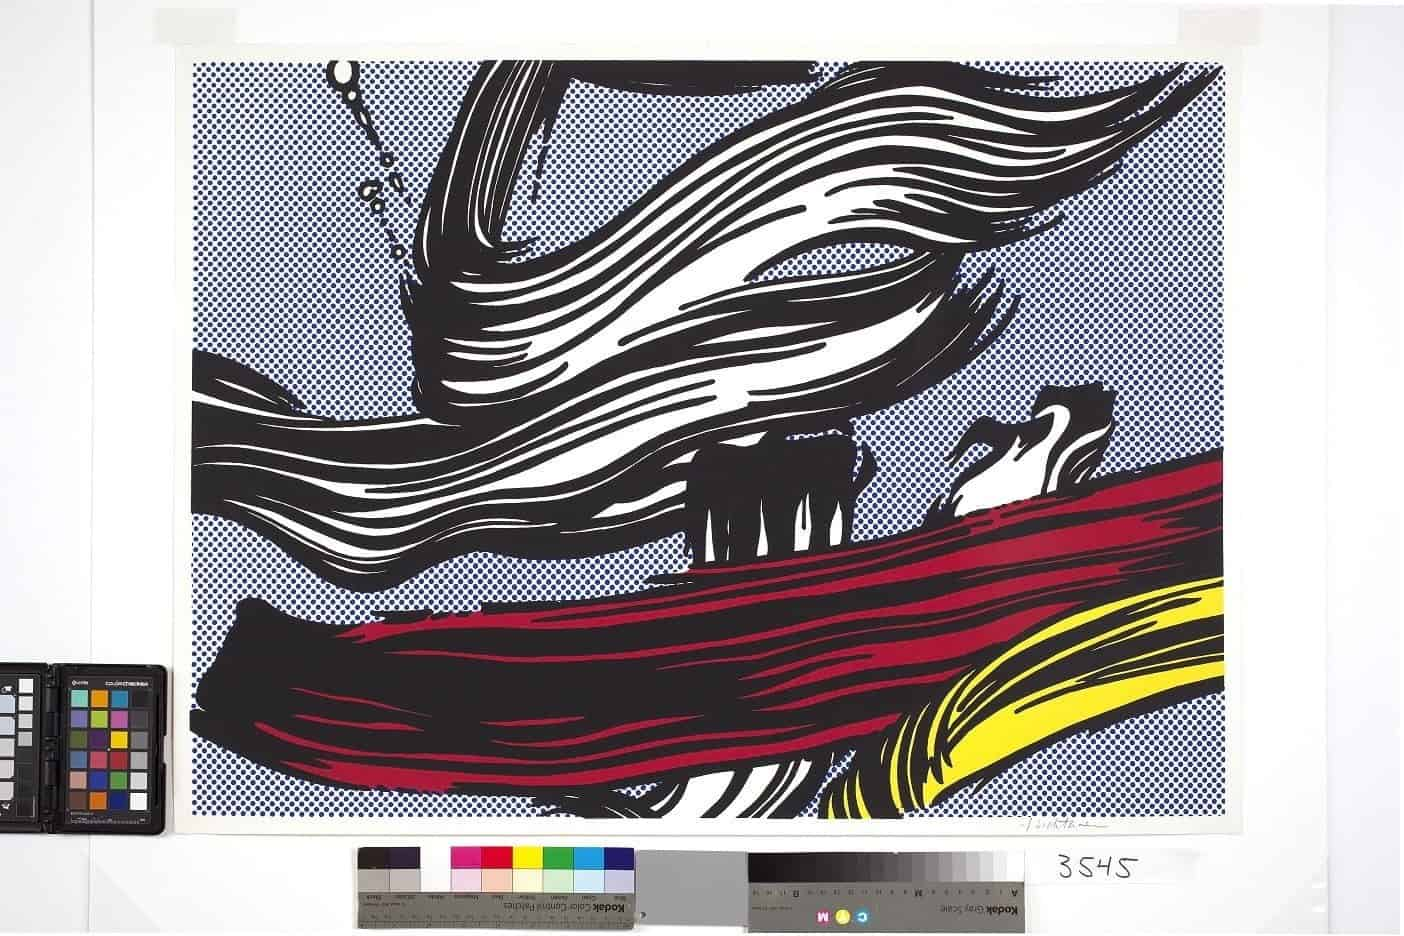 Roy Lichtenstein – Brushstrokes, 1967